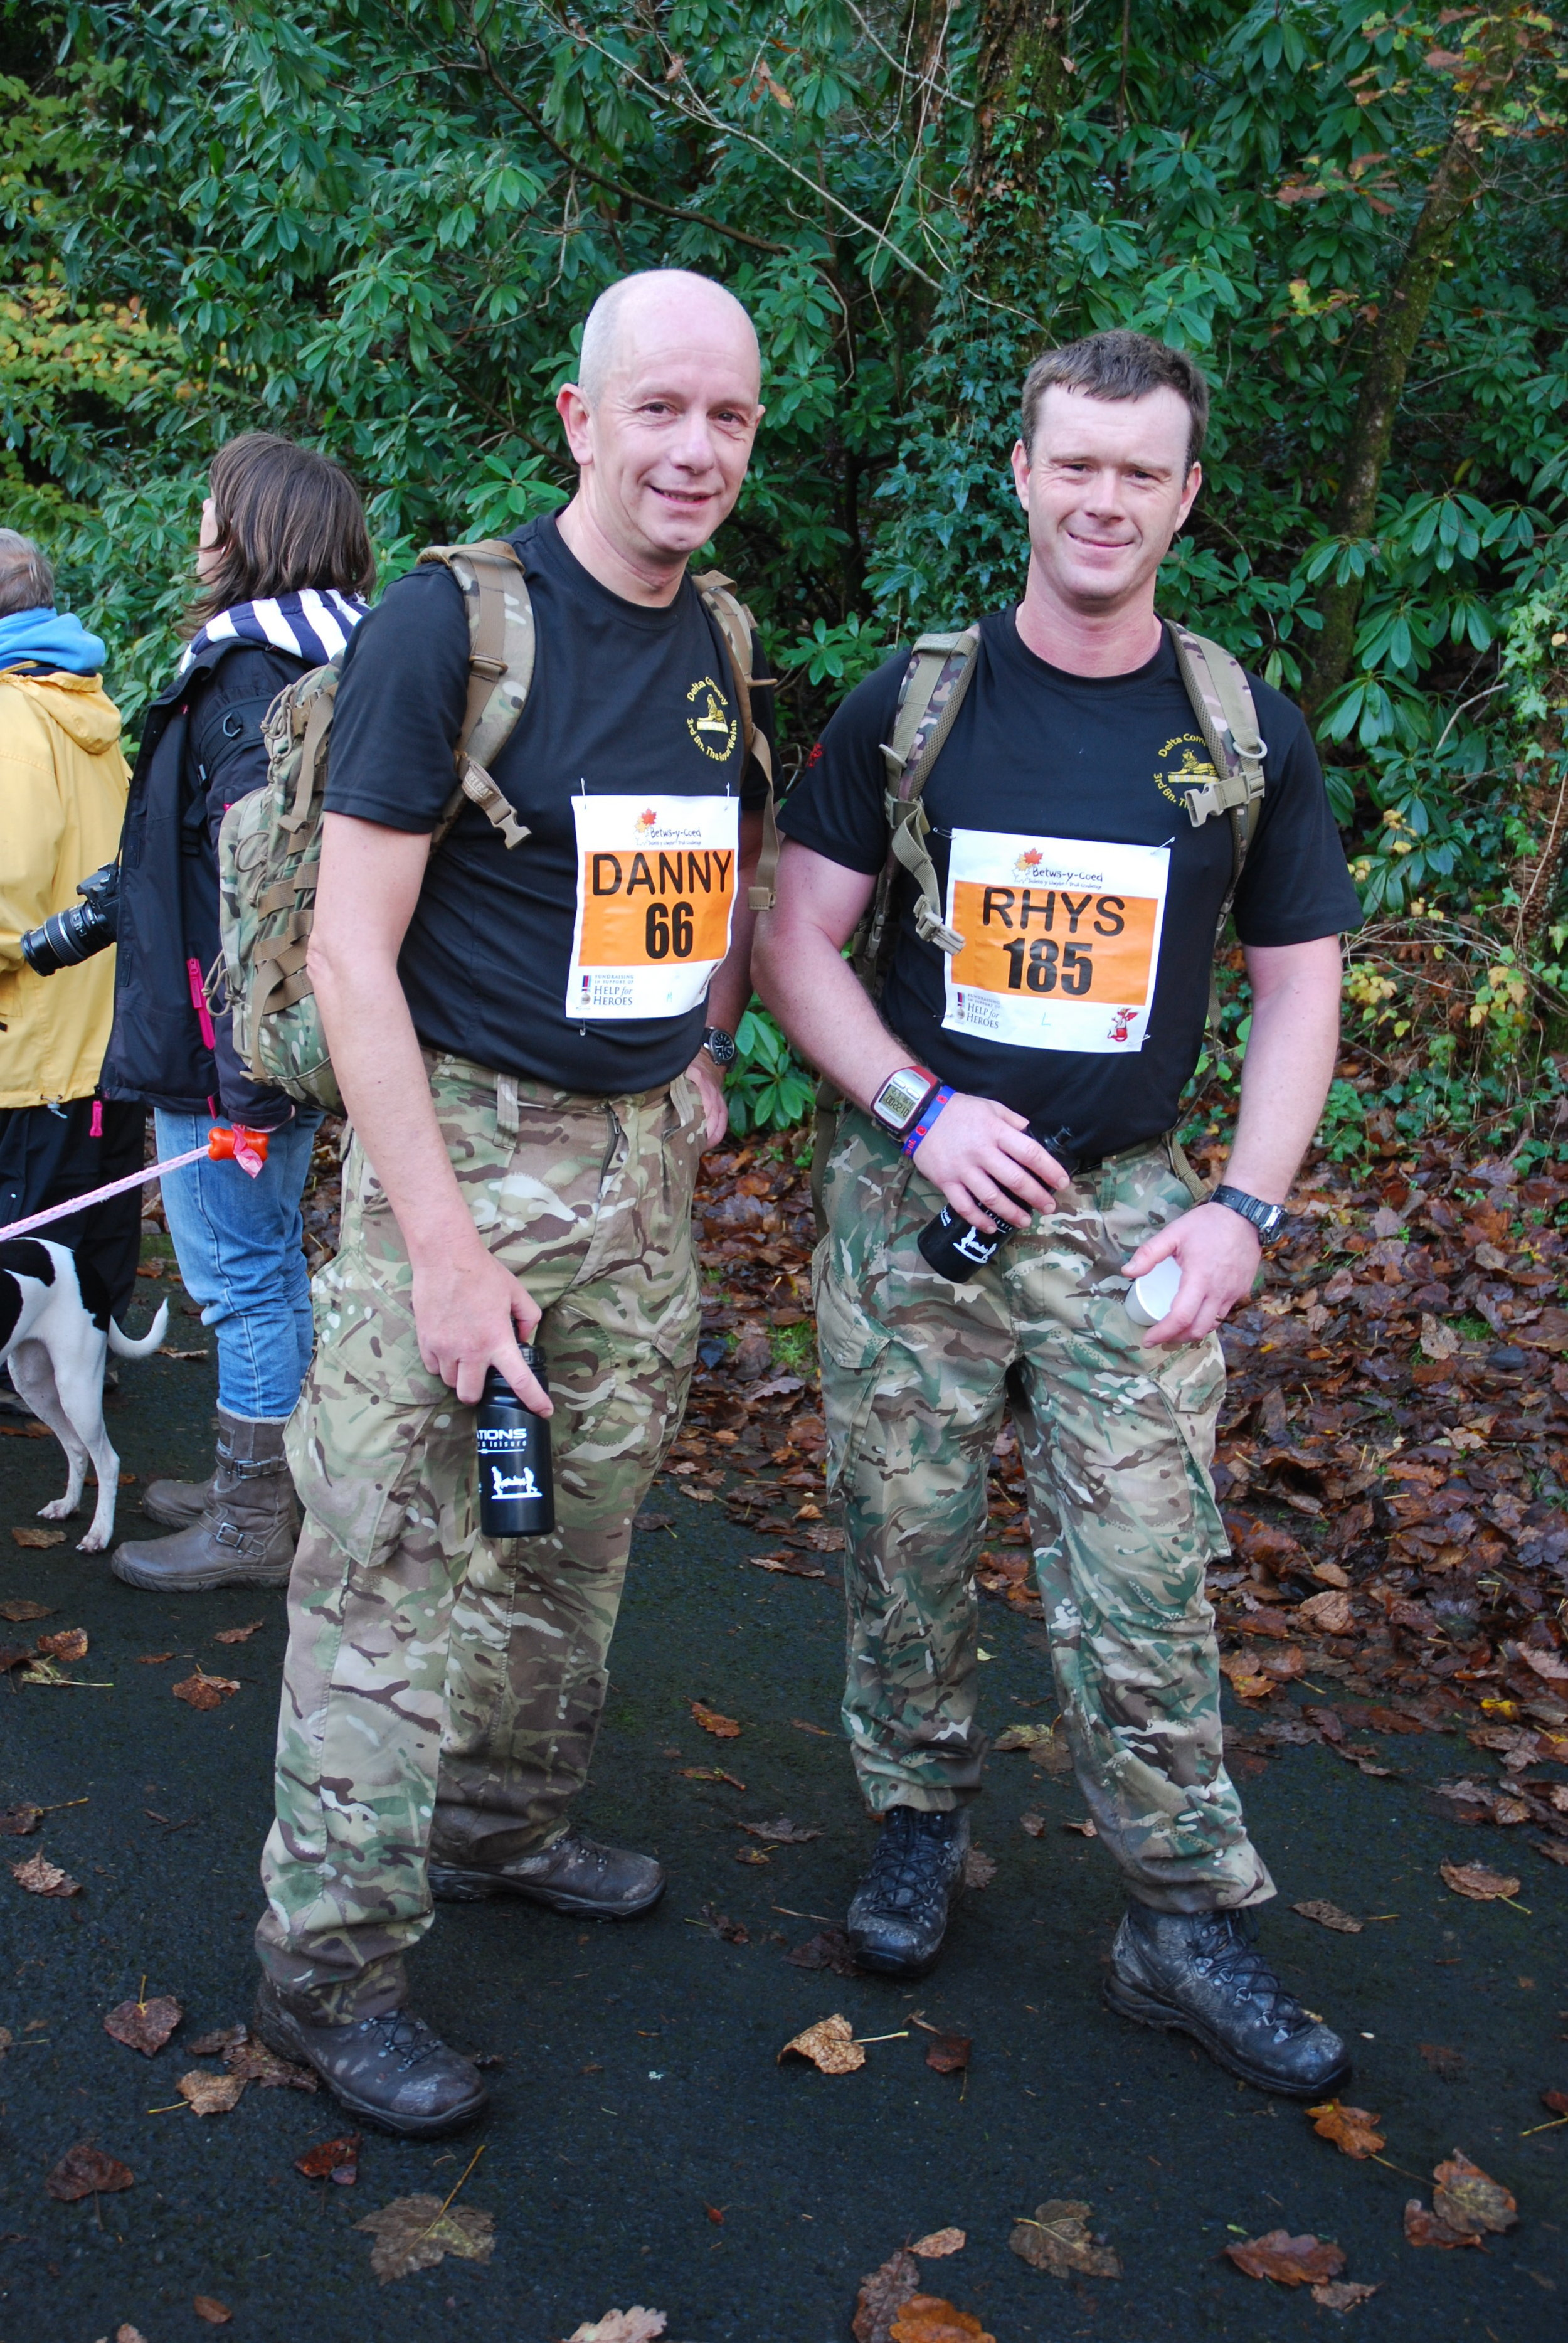 Two men in army clothing wearing their bergens ready for the bergen challenge.